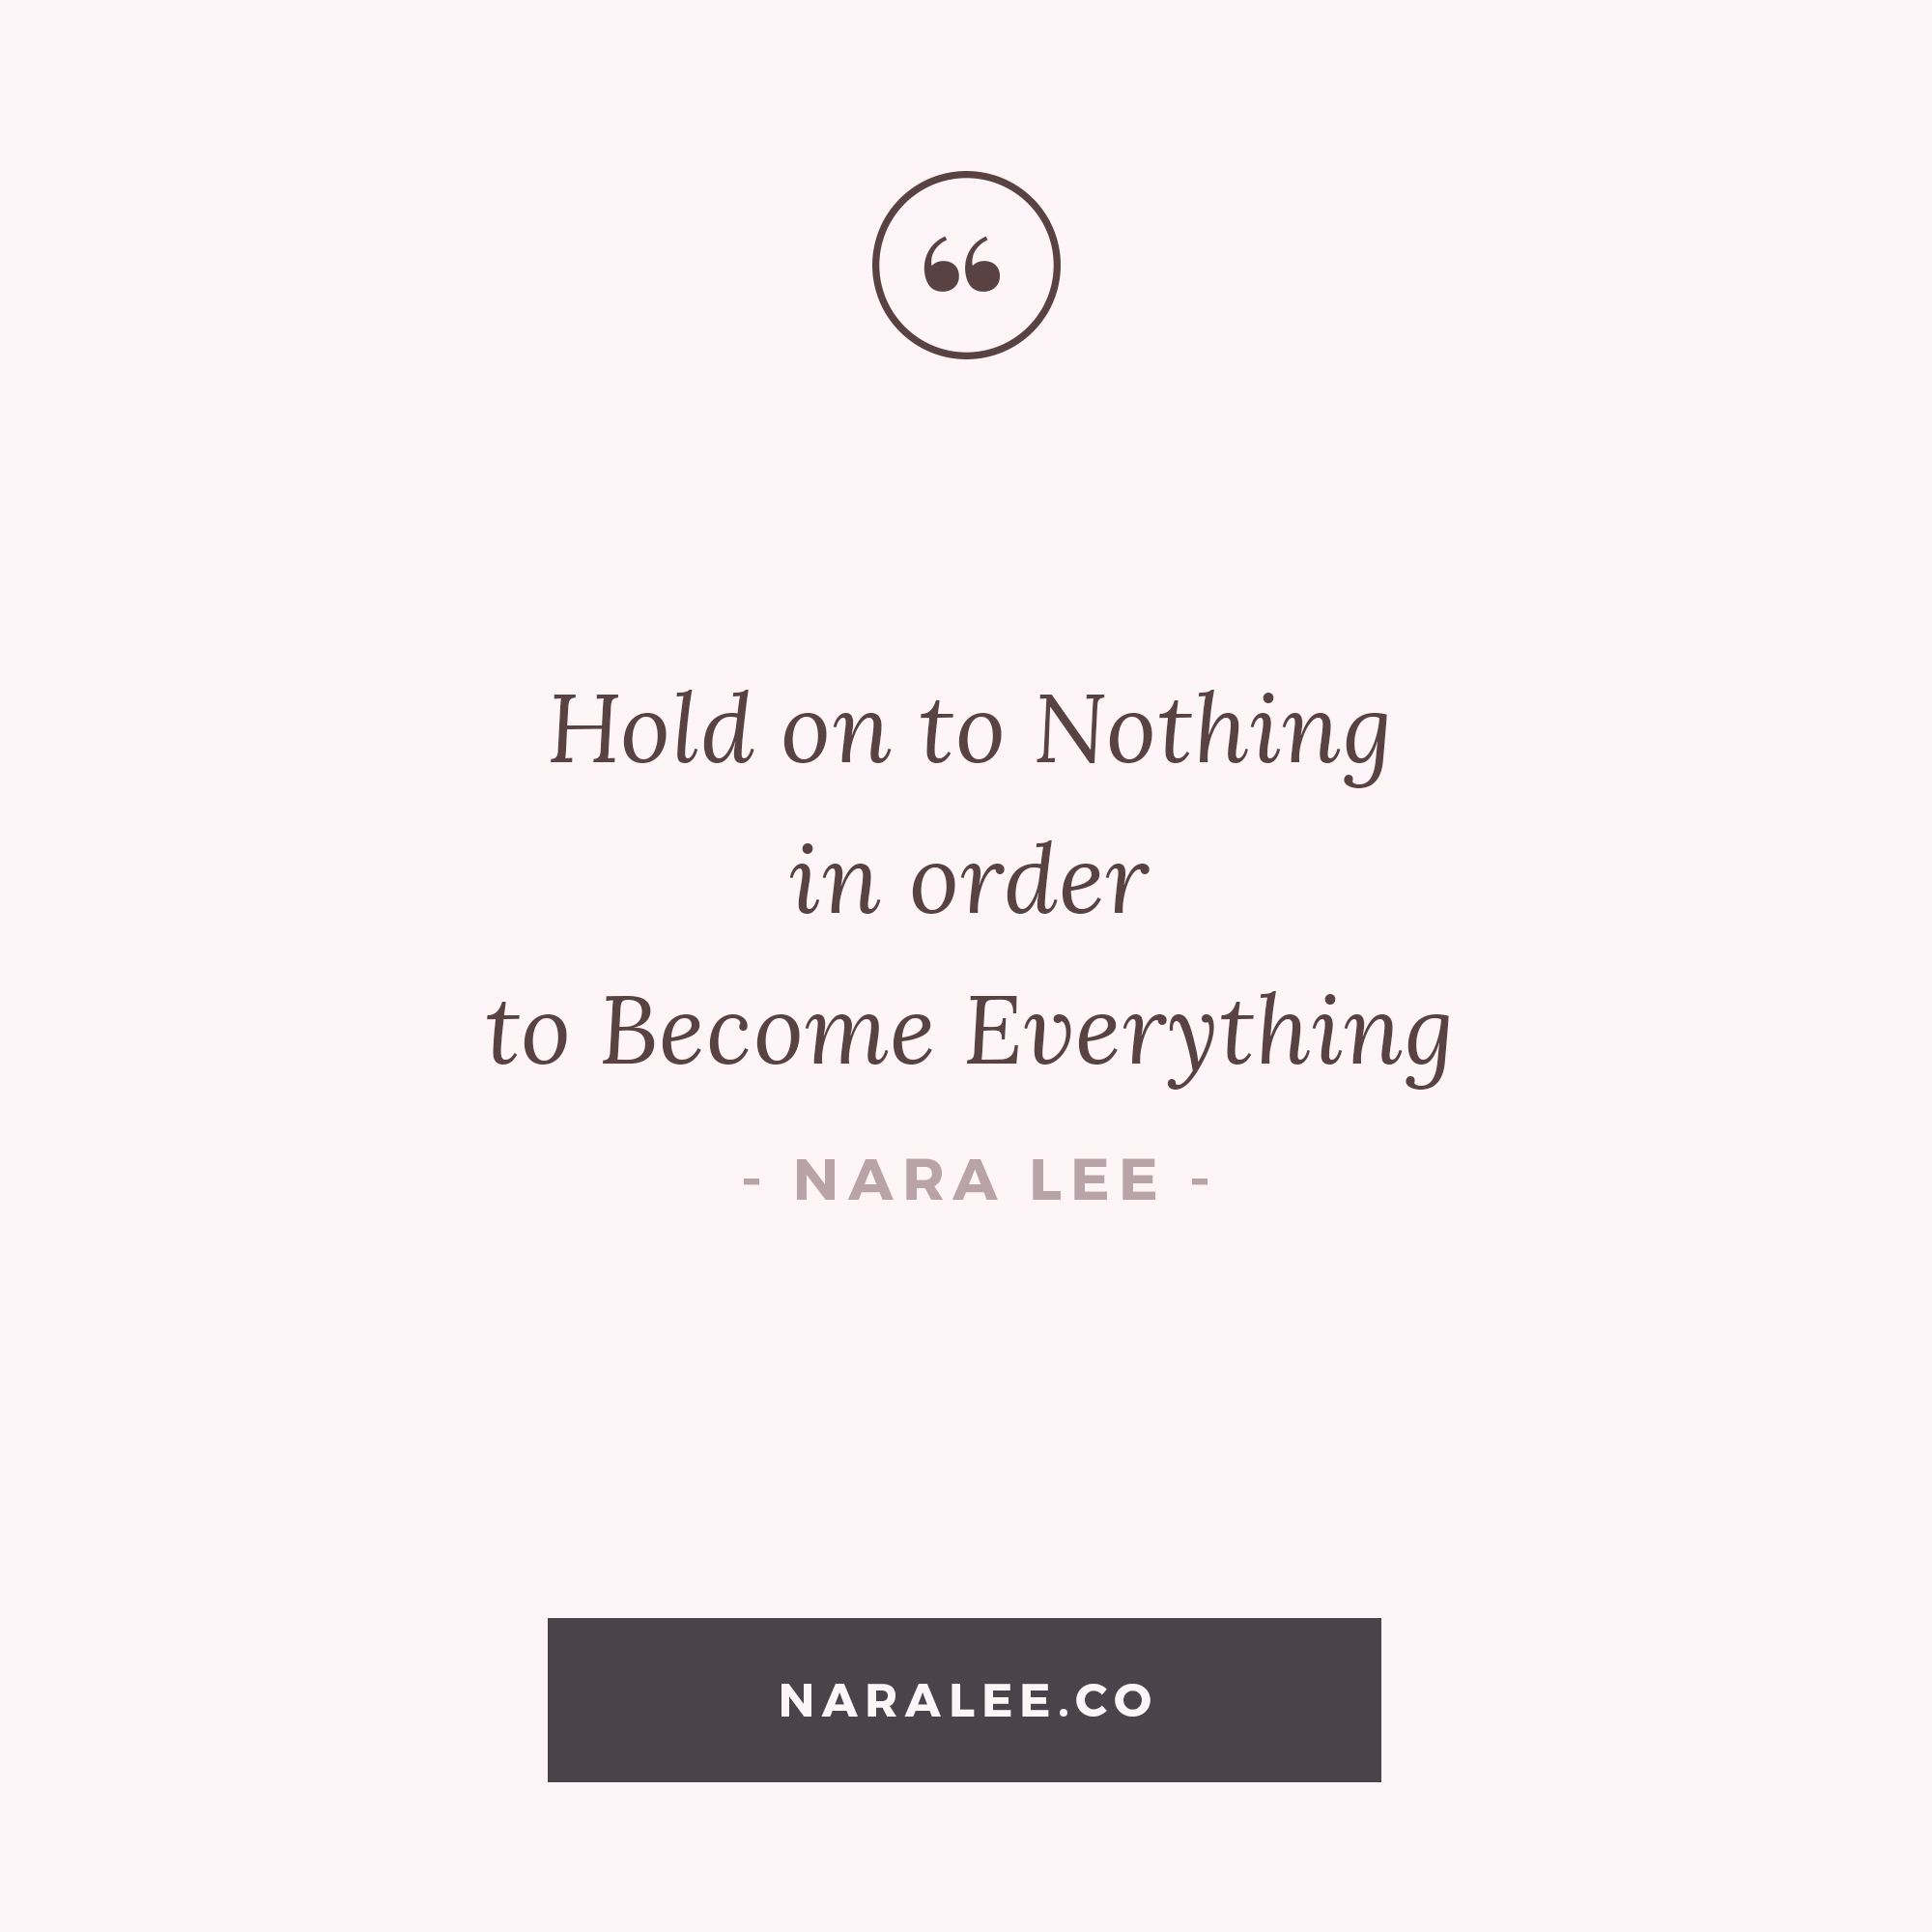 [Self-Love-Quotes] Hold on to Nothing to become Everything.jpg